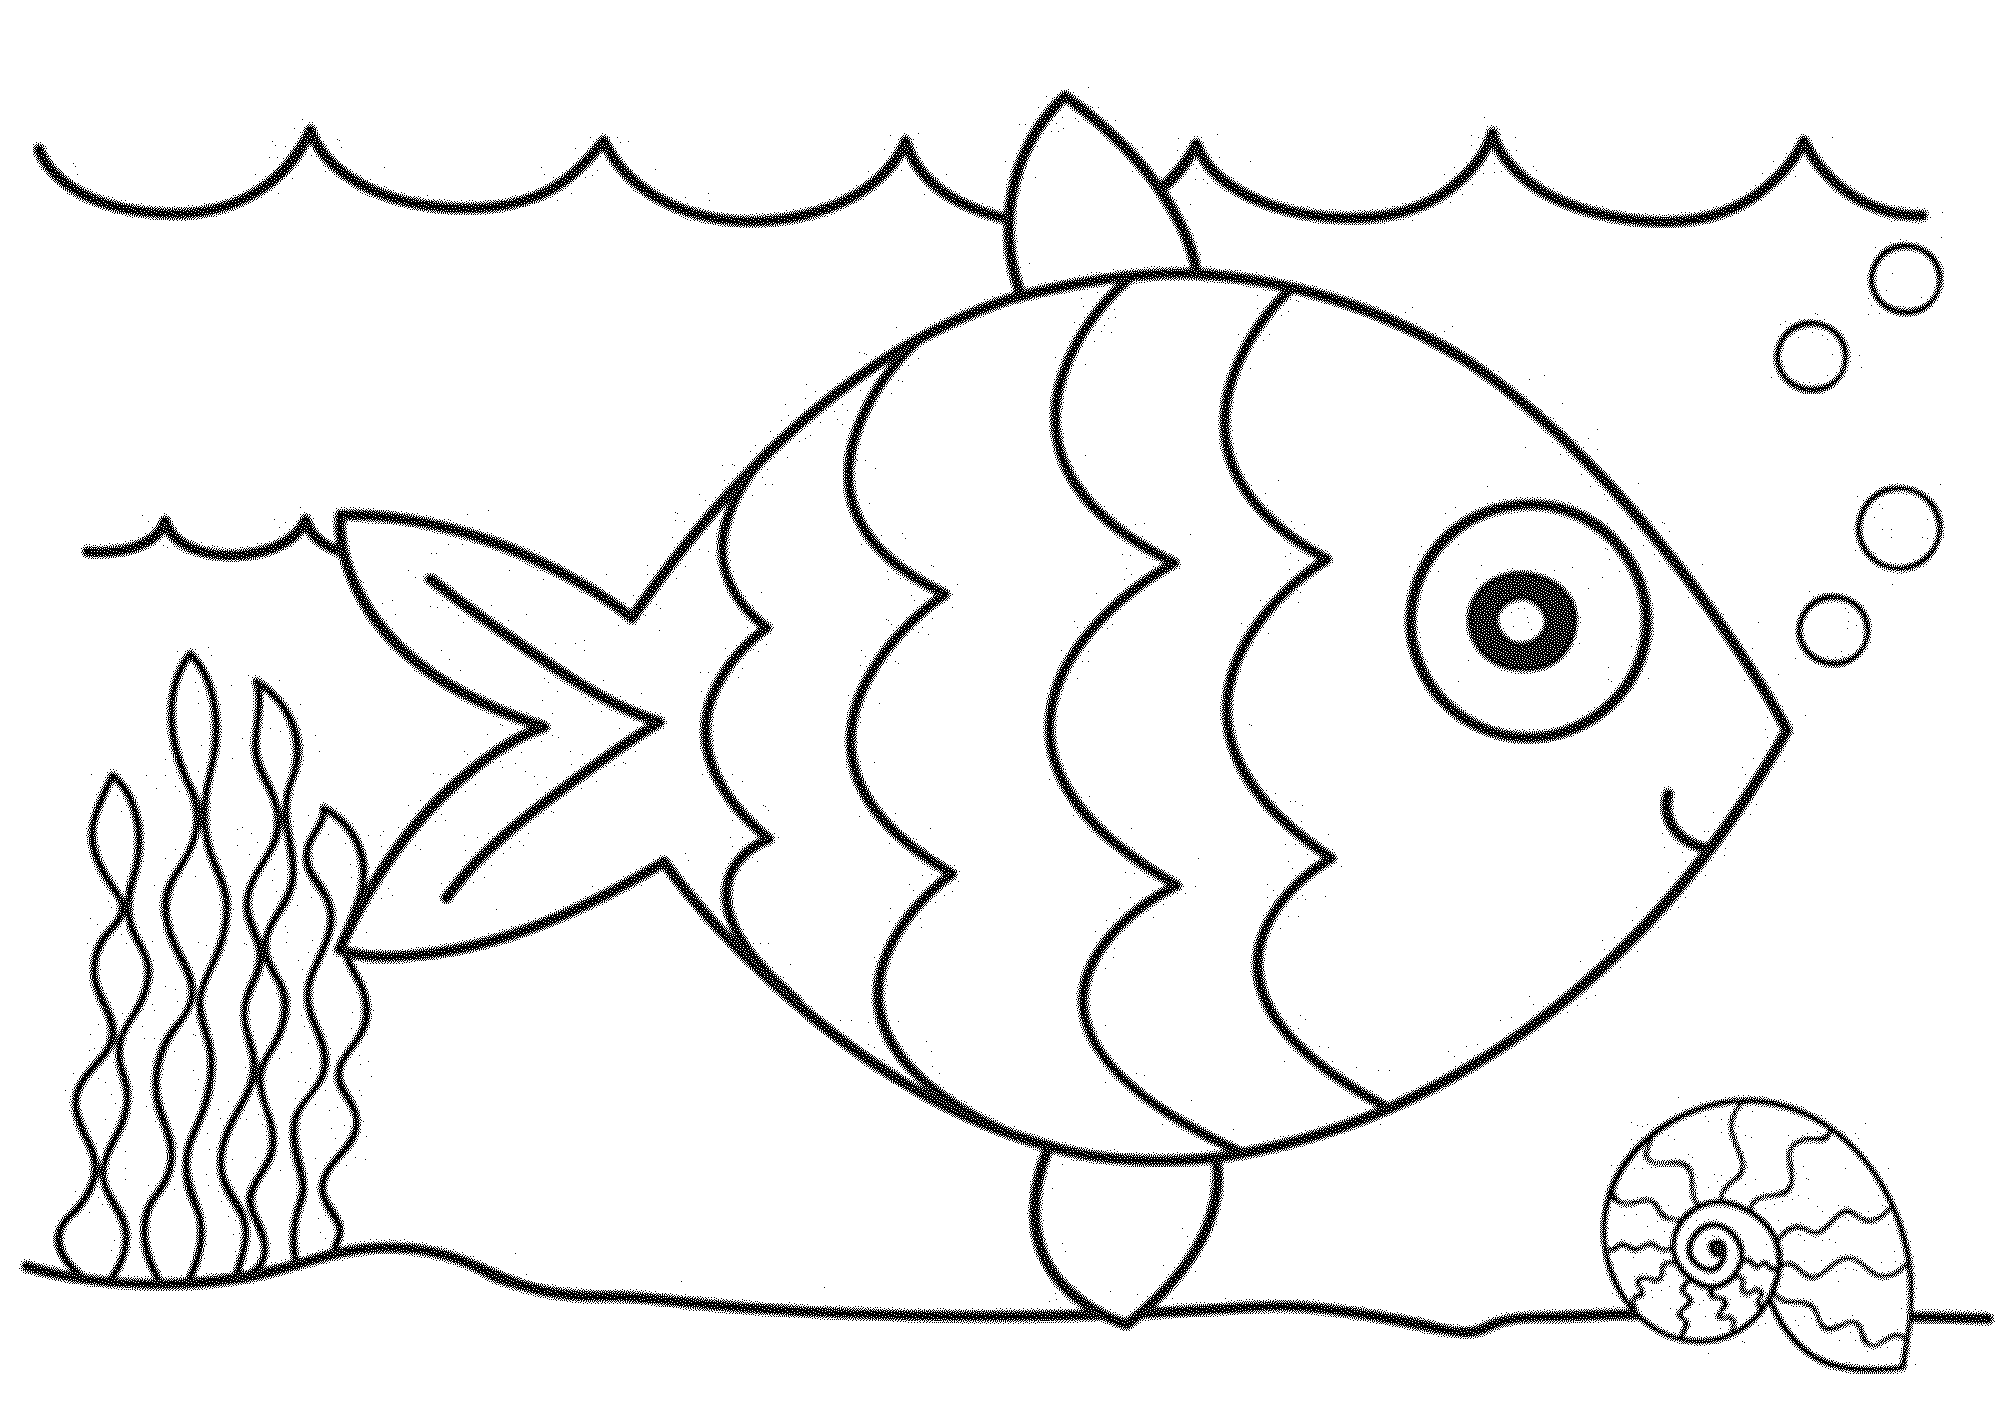 coloring fish pages print download cute and educative fish coloring pages coloring pages fish